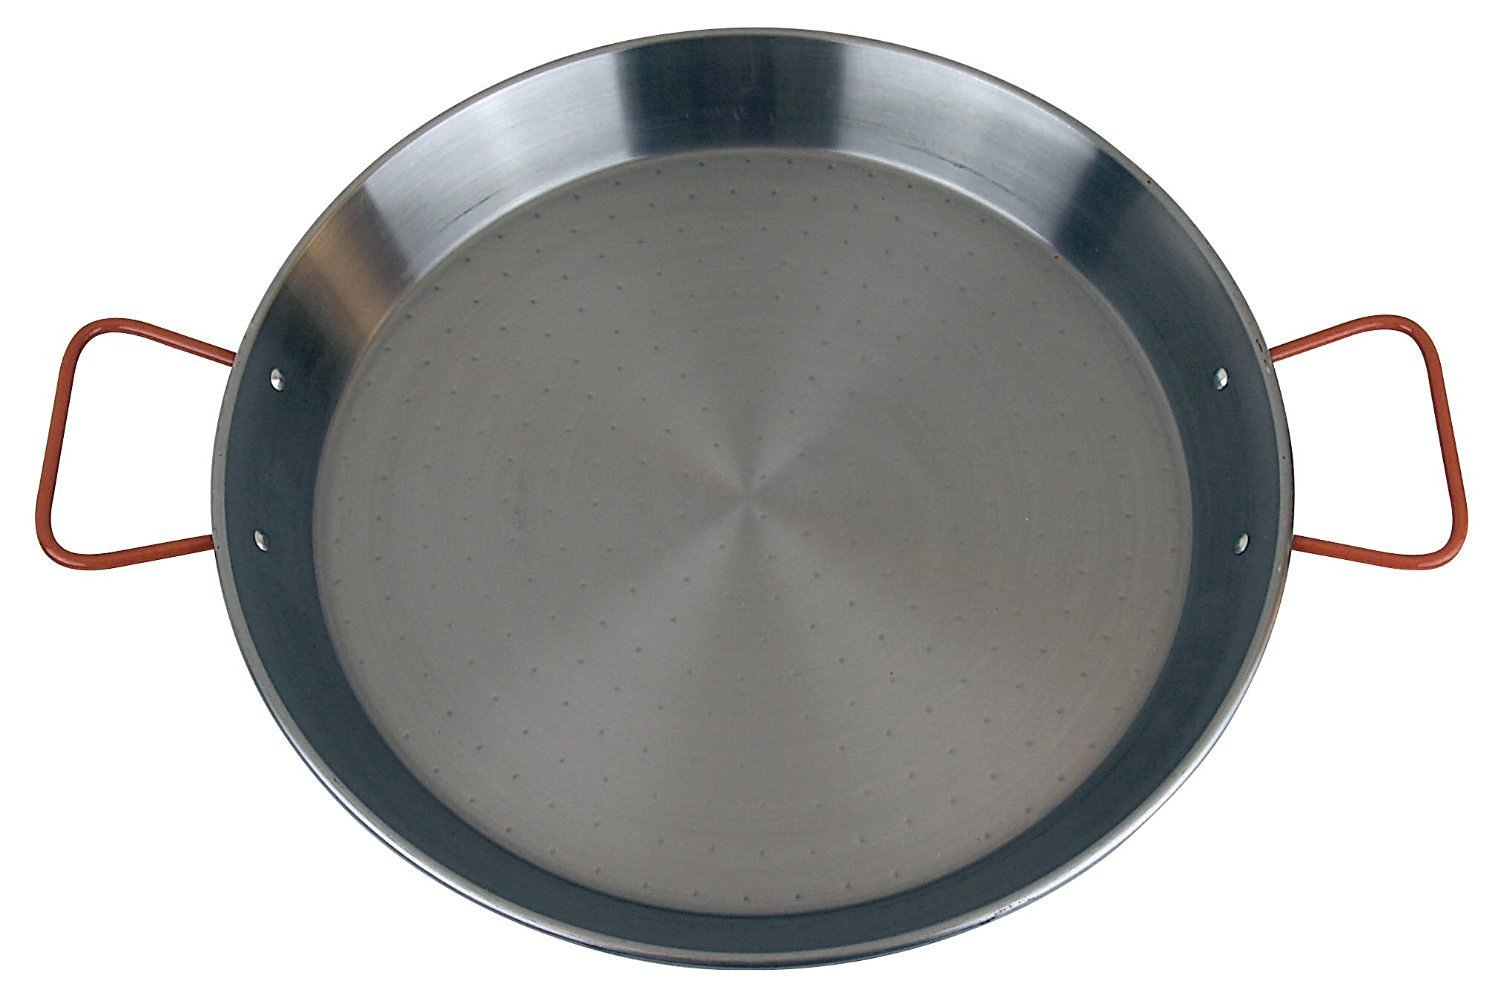 """Paella Pan 15"""" 38cm Carbon Steel, Red Handle, Made in Spain, by The Cook"""